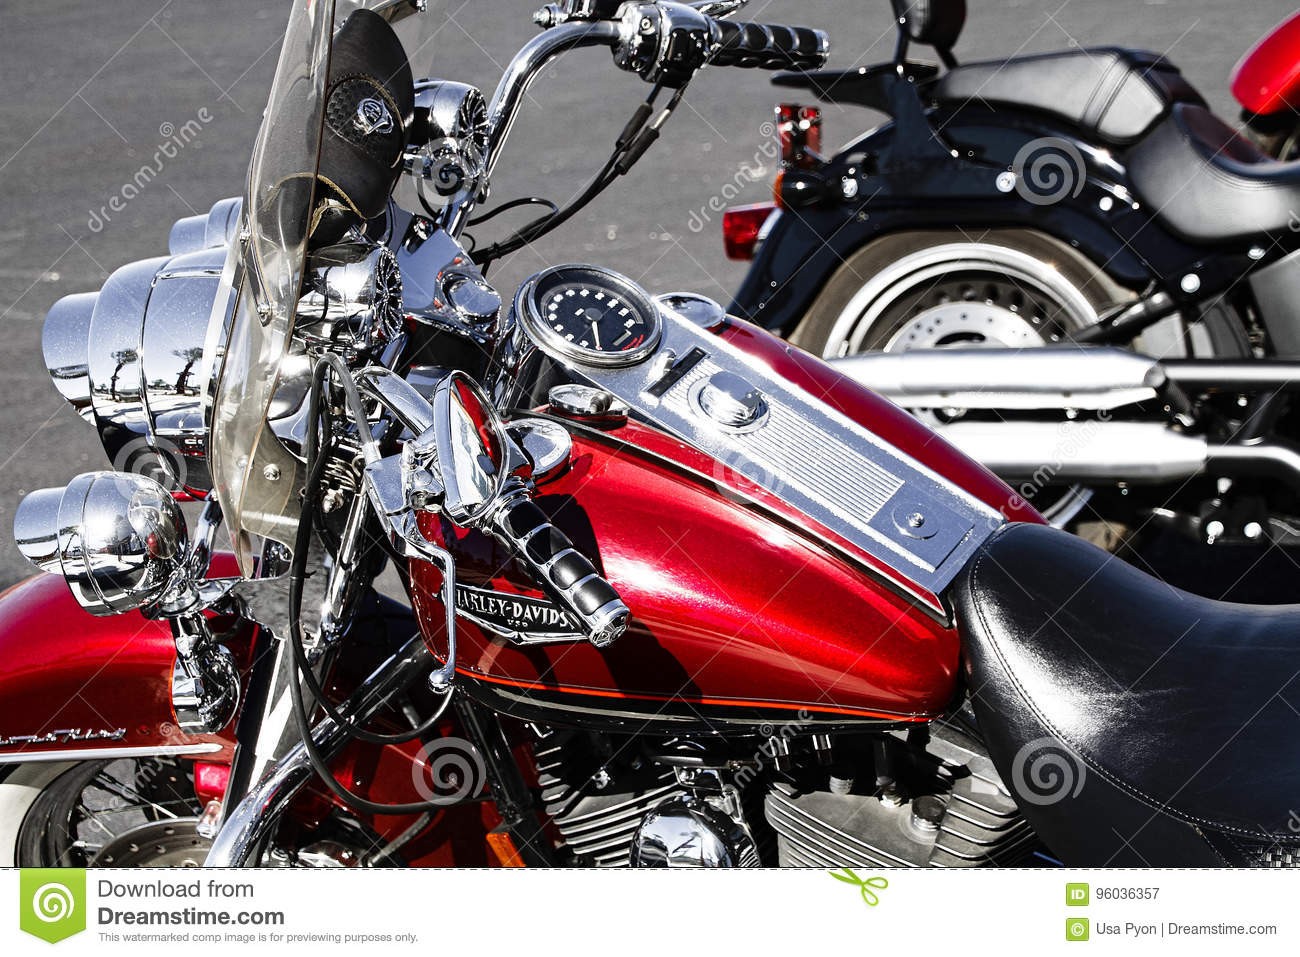 Harley Davidson Motorcycle Editorial Photography Image Of United